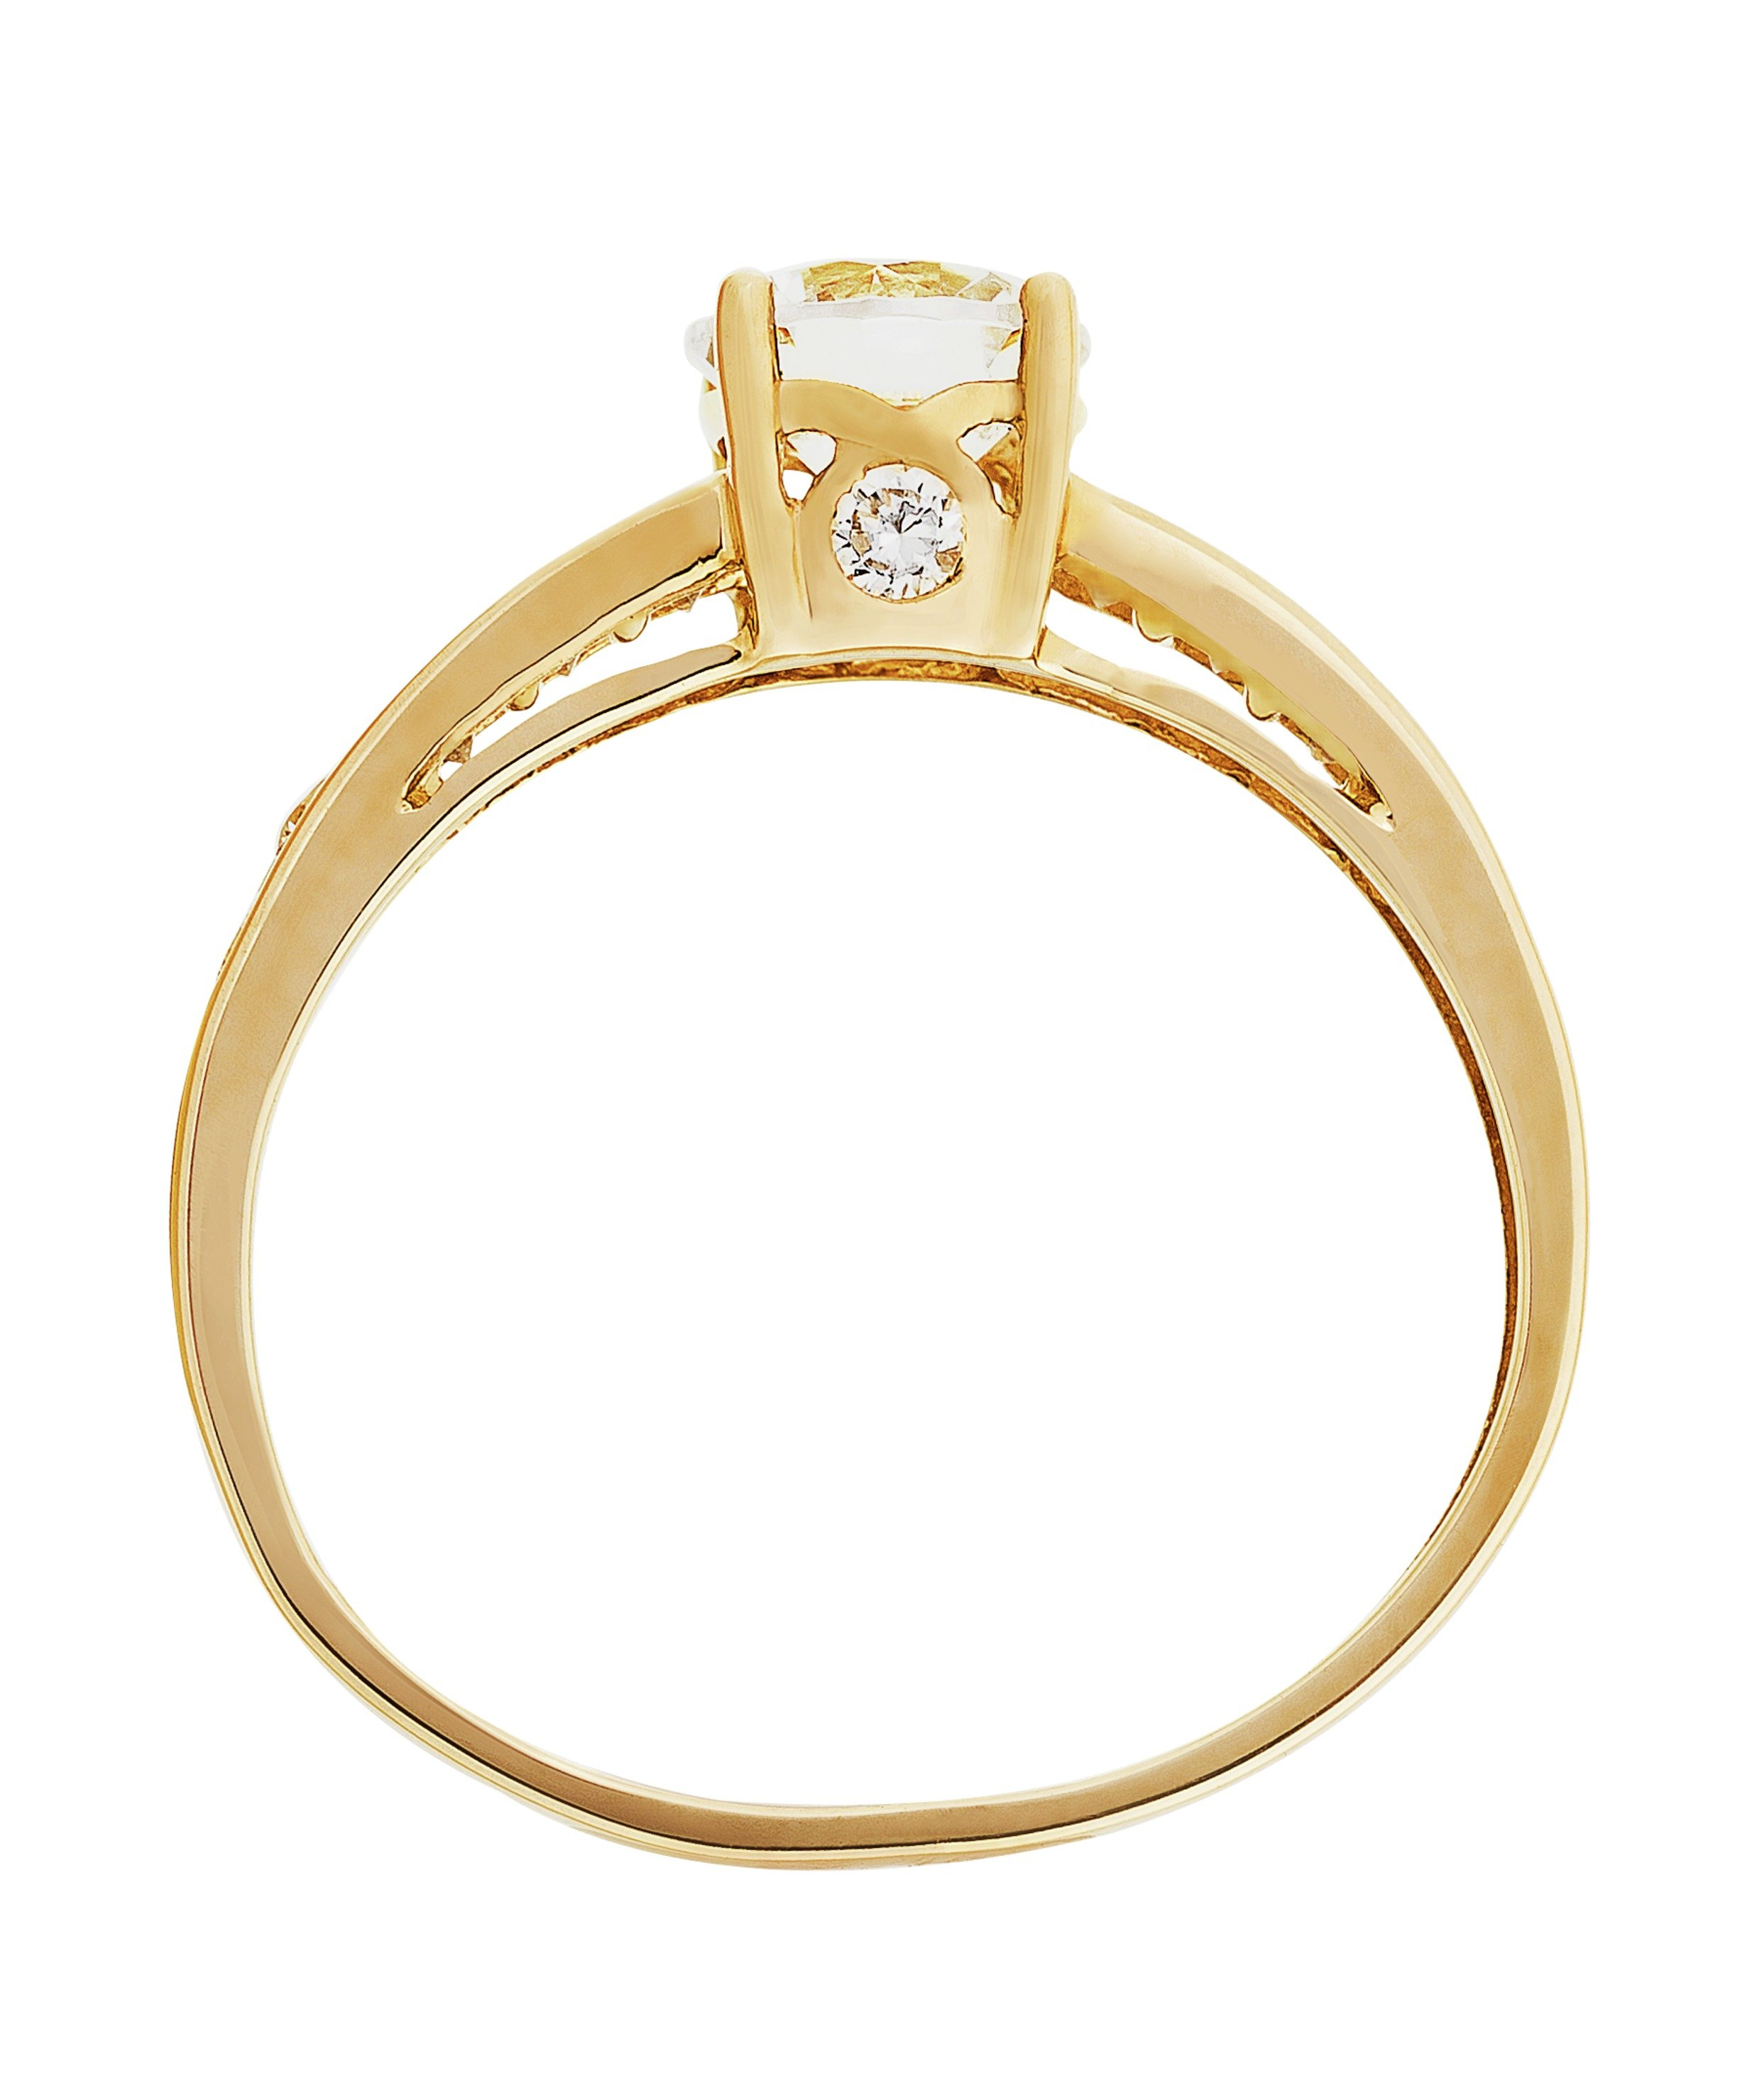 buy 9ct gold solitaire cubic zirconia shoulder ring at